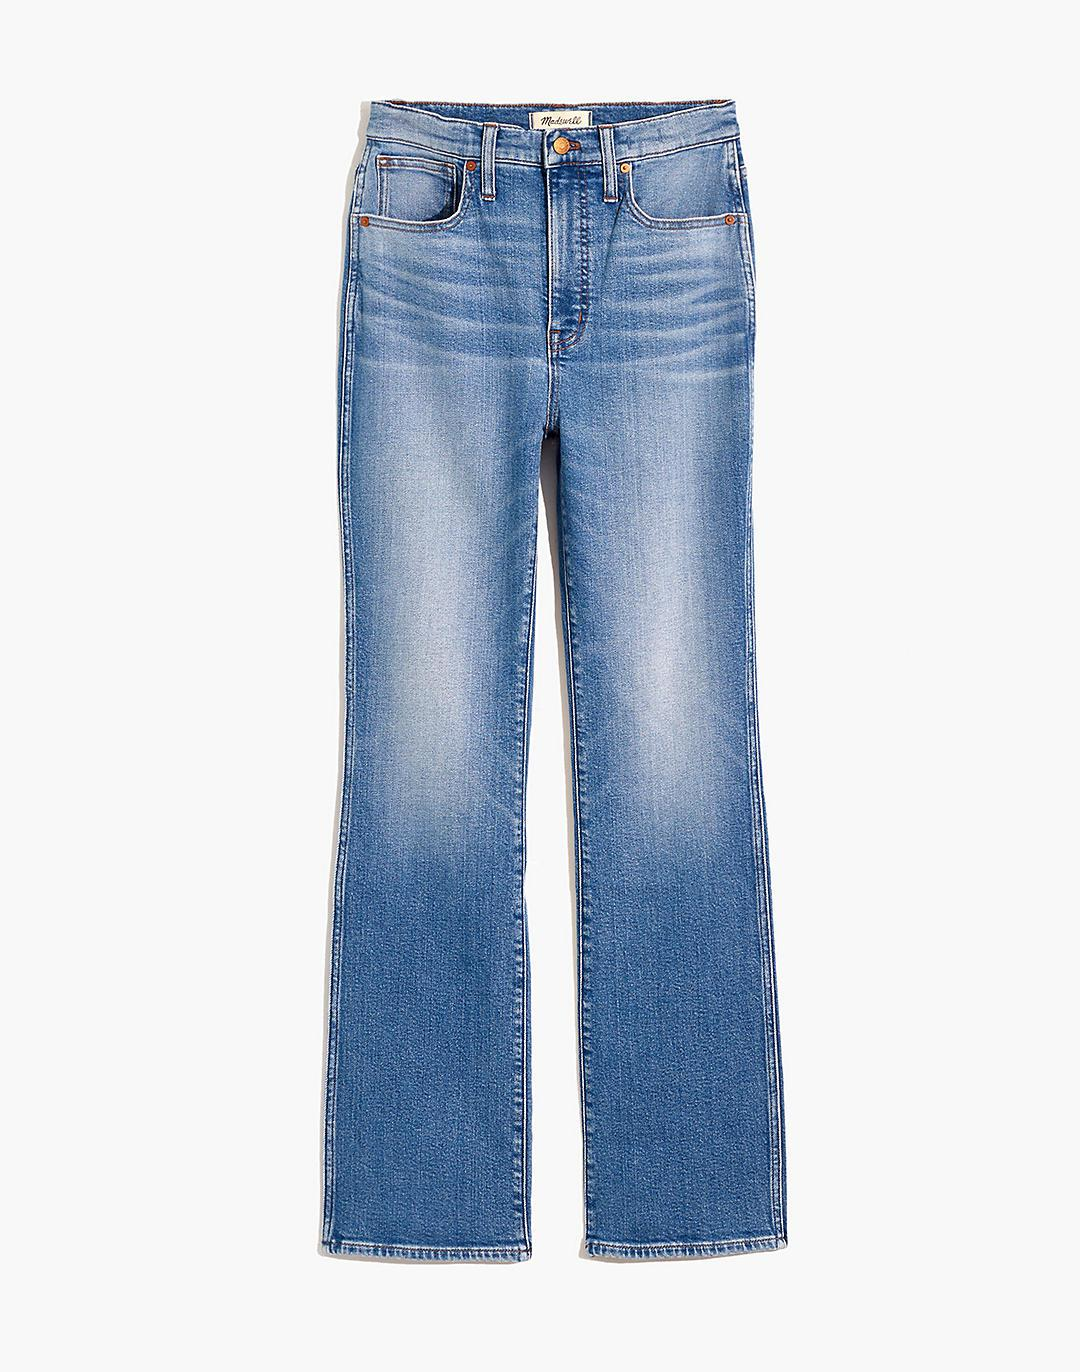 Plus High-Rise Bootcut Jeans in Danver Wash